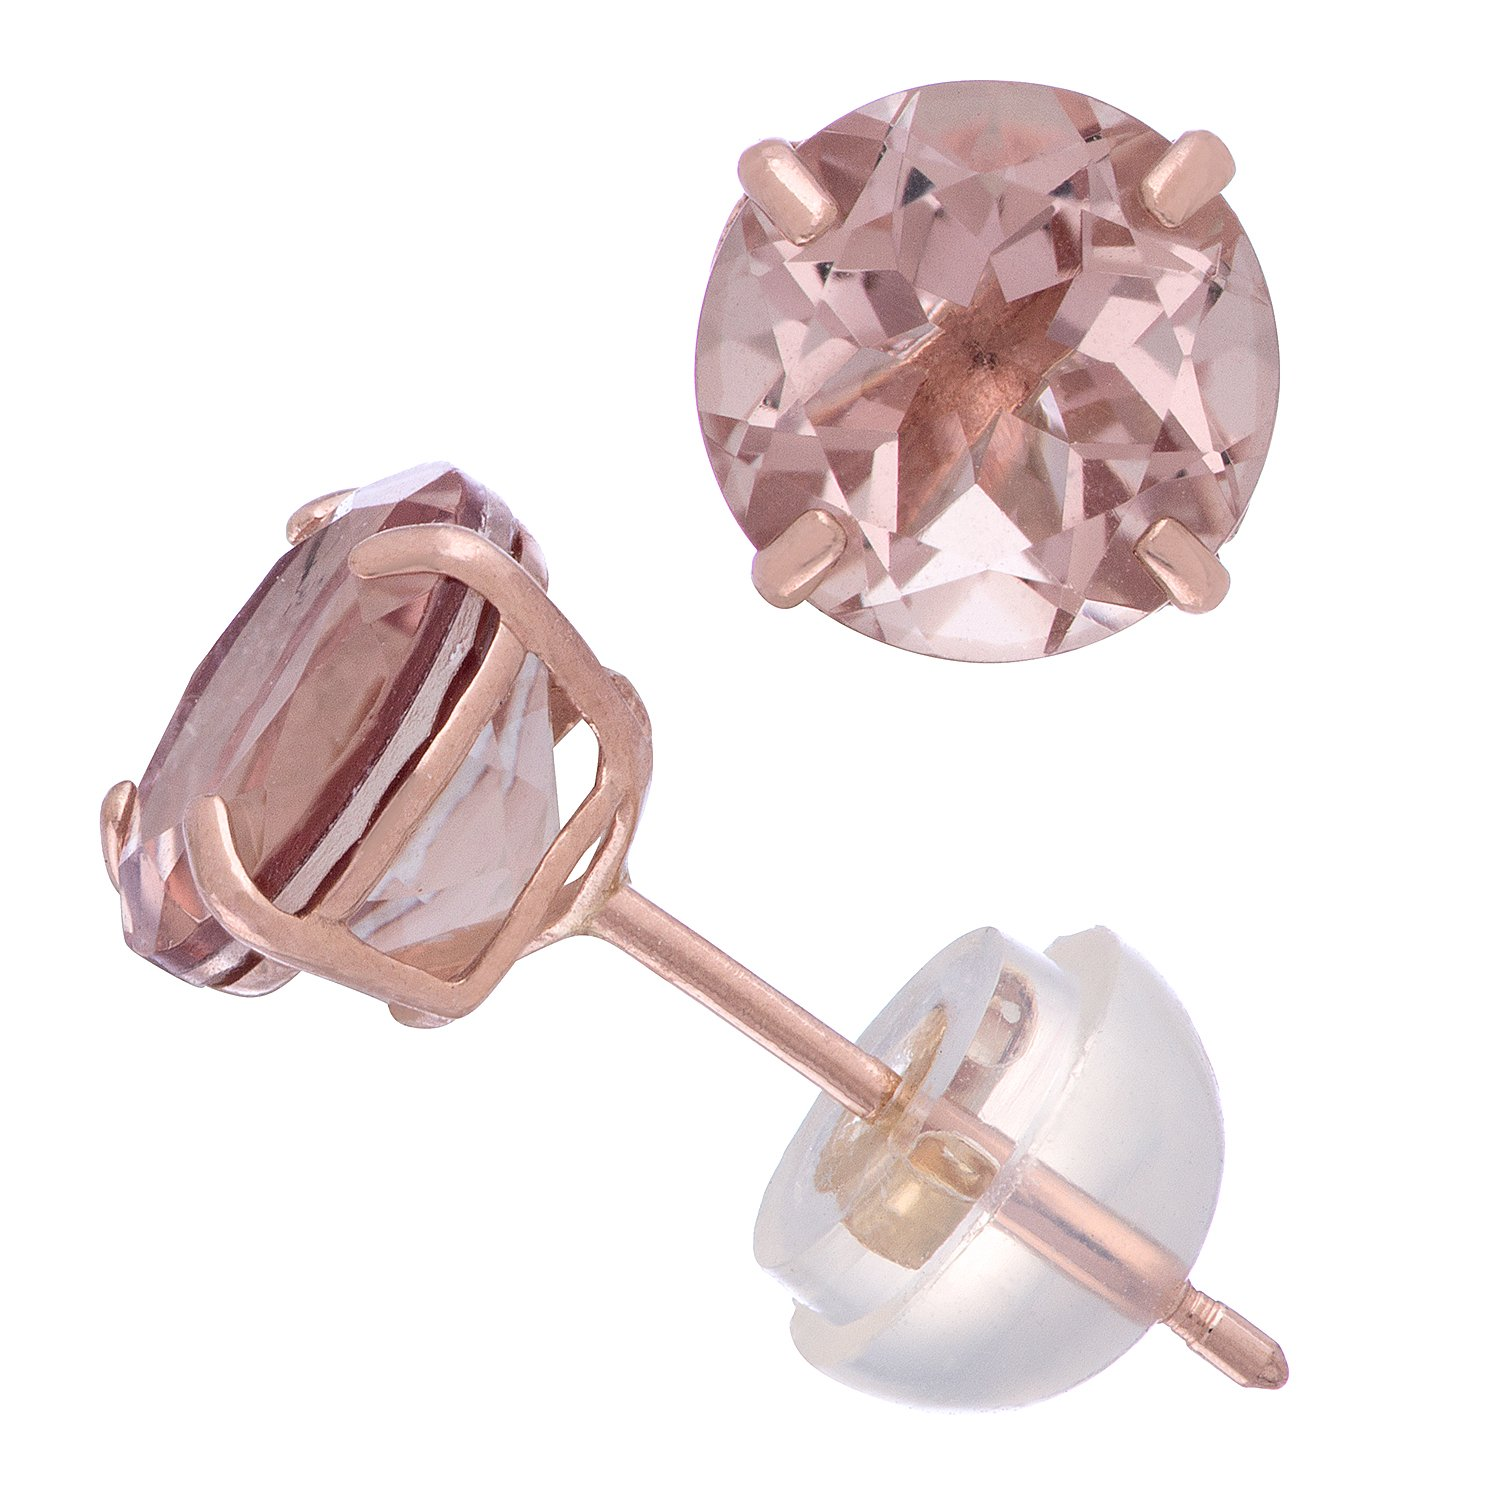 Simulated Morganite Round Shape Stud Earrings in 10K Rose Gold, Comfort Fit - 6mm